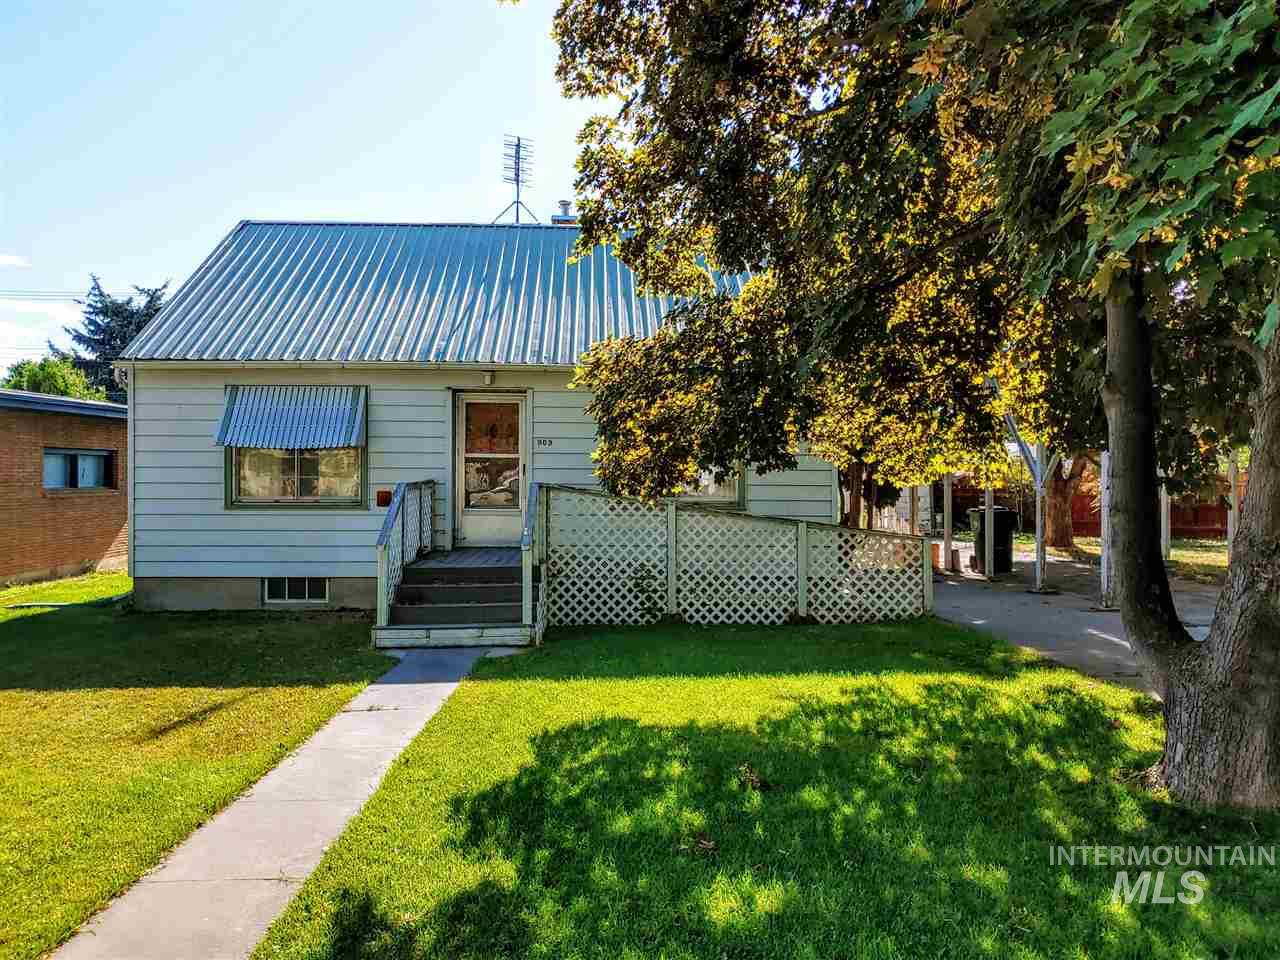 909 Yakima Ave, Filer, ID 83328